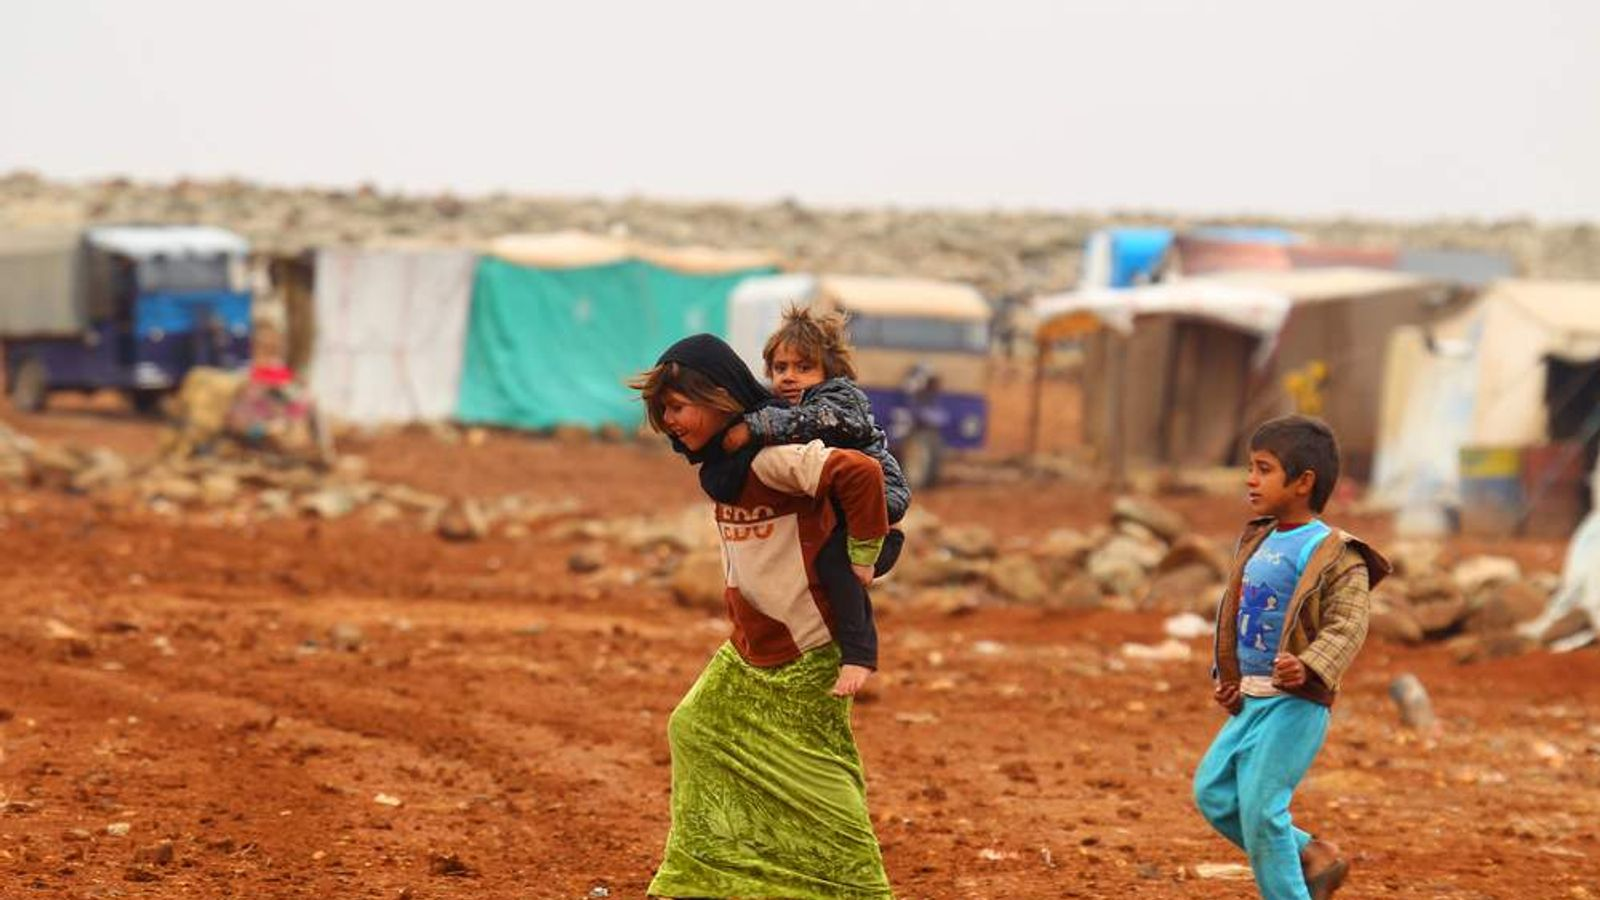 An Internally displaced Syrian youth carries a baby on her back inside a refugee camp in the Hama countryside, Syria